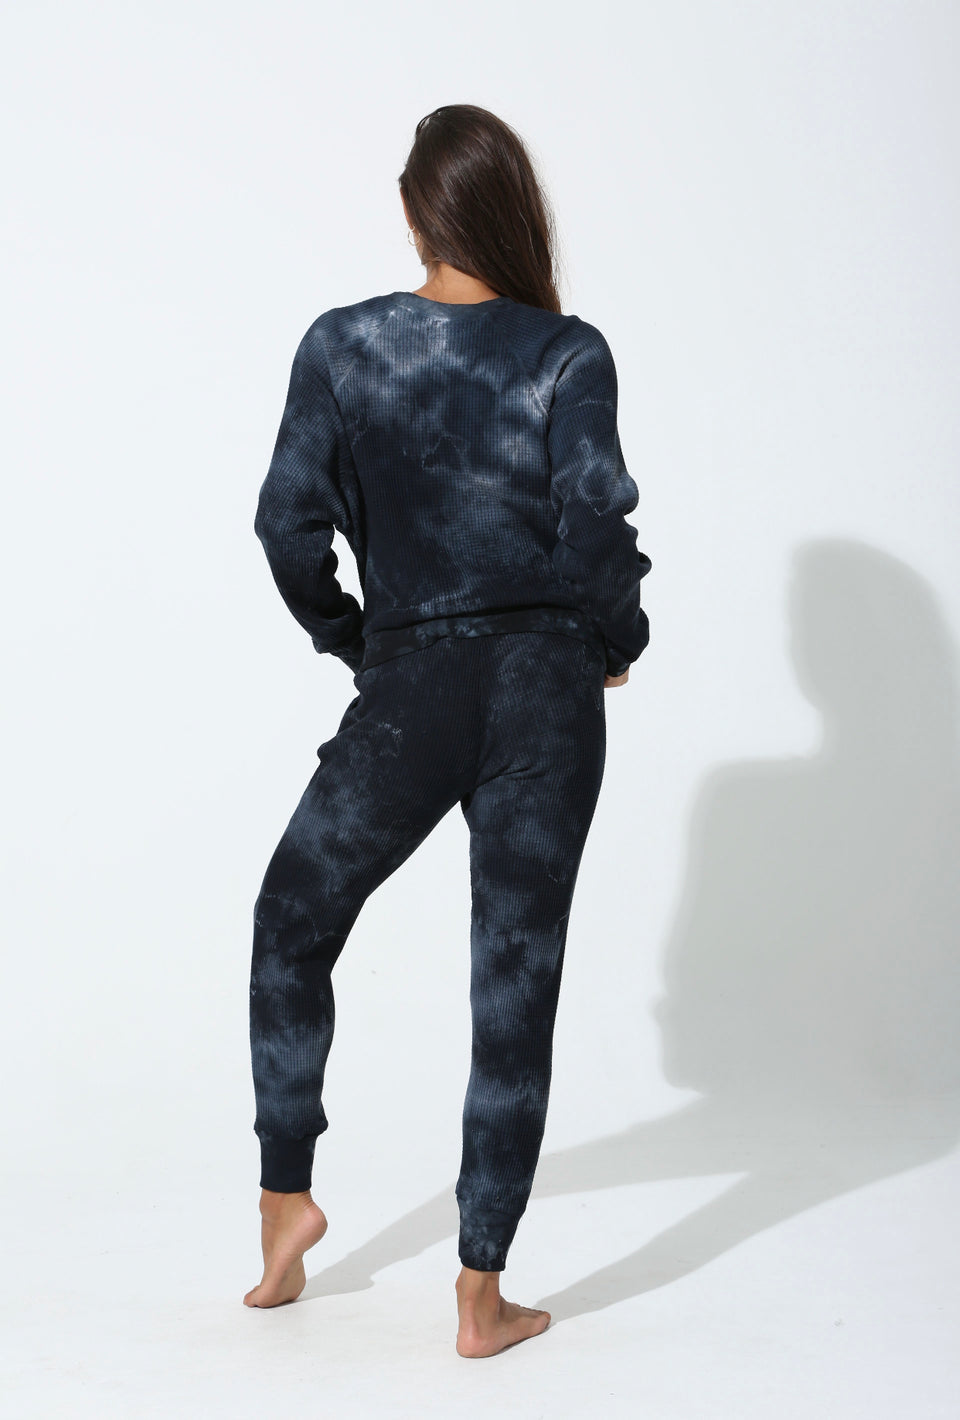 Electric & Rose Wesley Sweatpants Thunderstrike Onyx